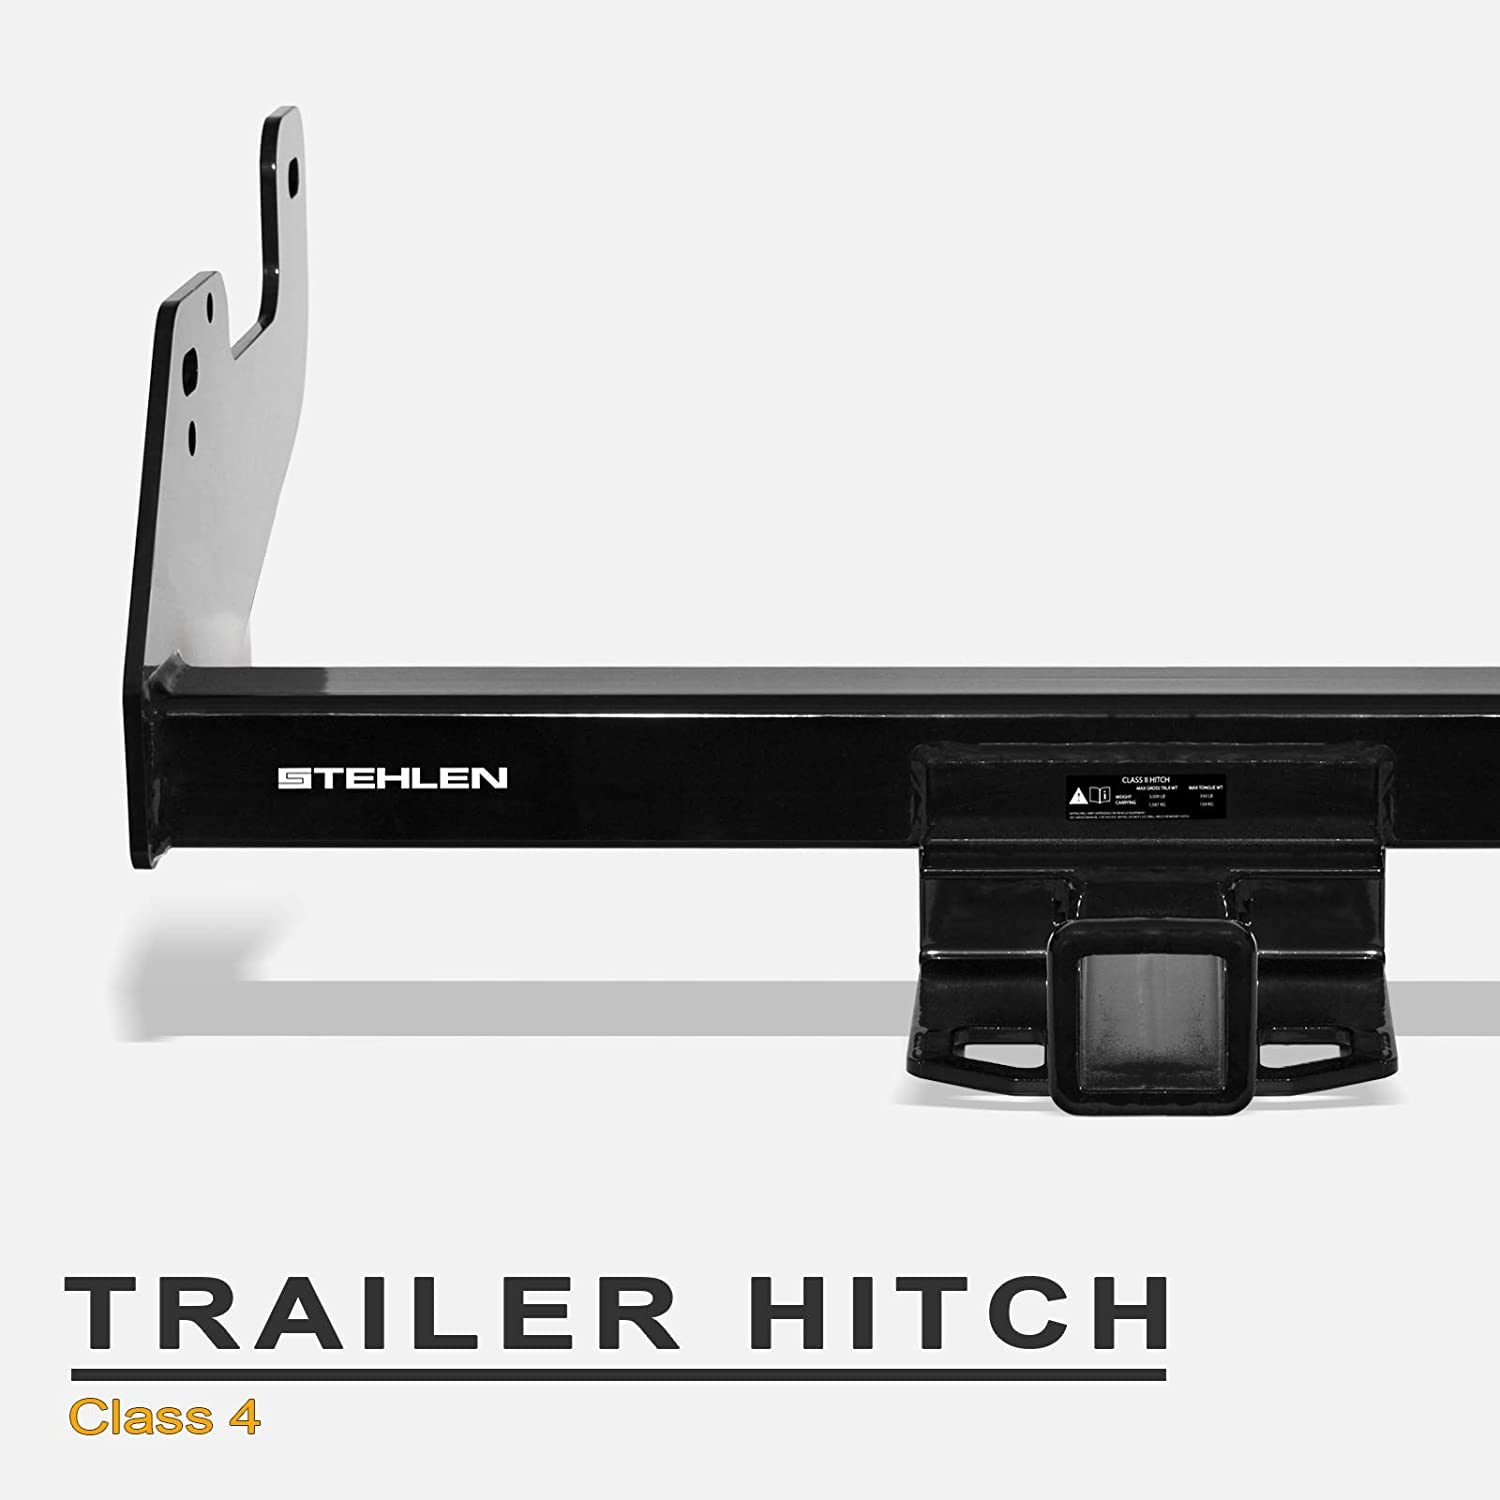 Draw-Tite 76136 Class IV Max-Frame Trailer Hitch with 2 Receiver Tube Opening 1 Pack